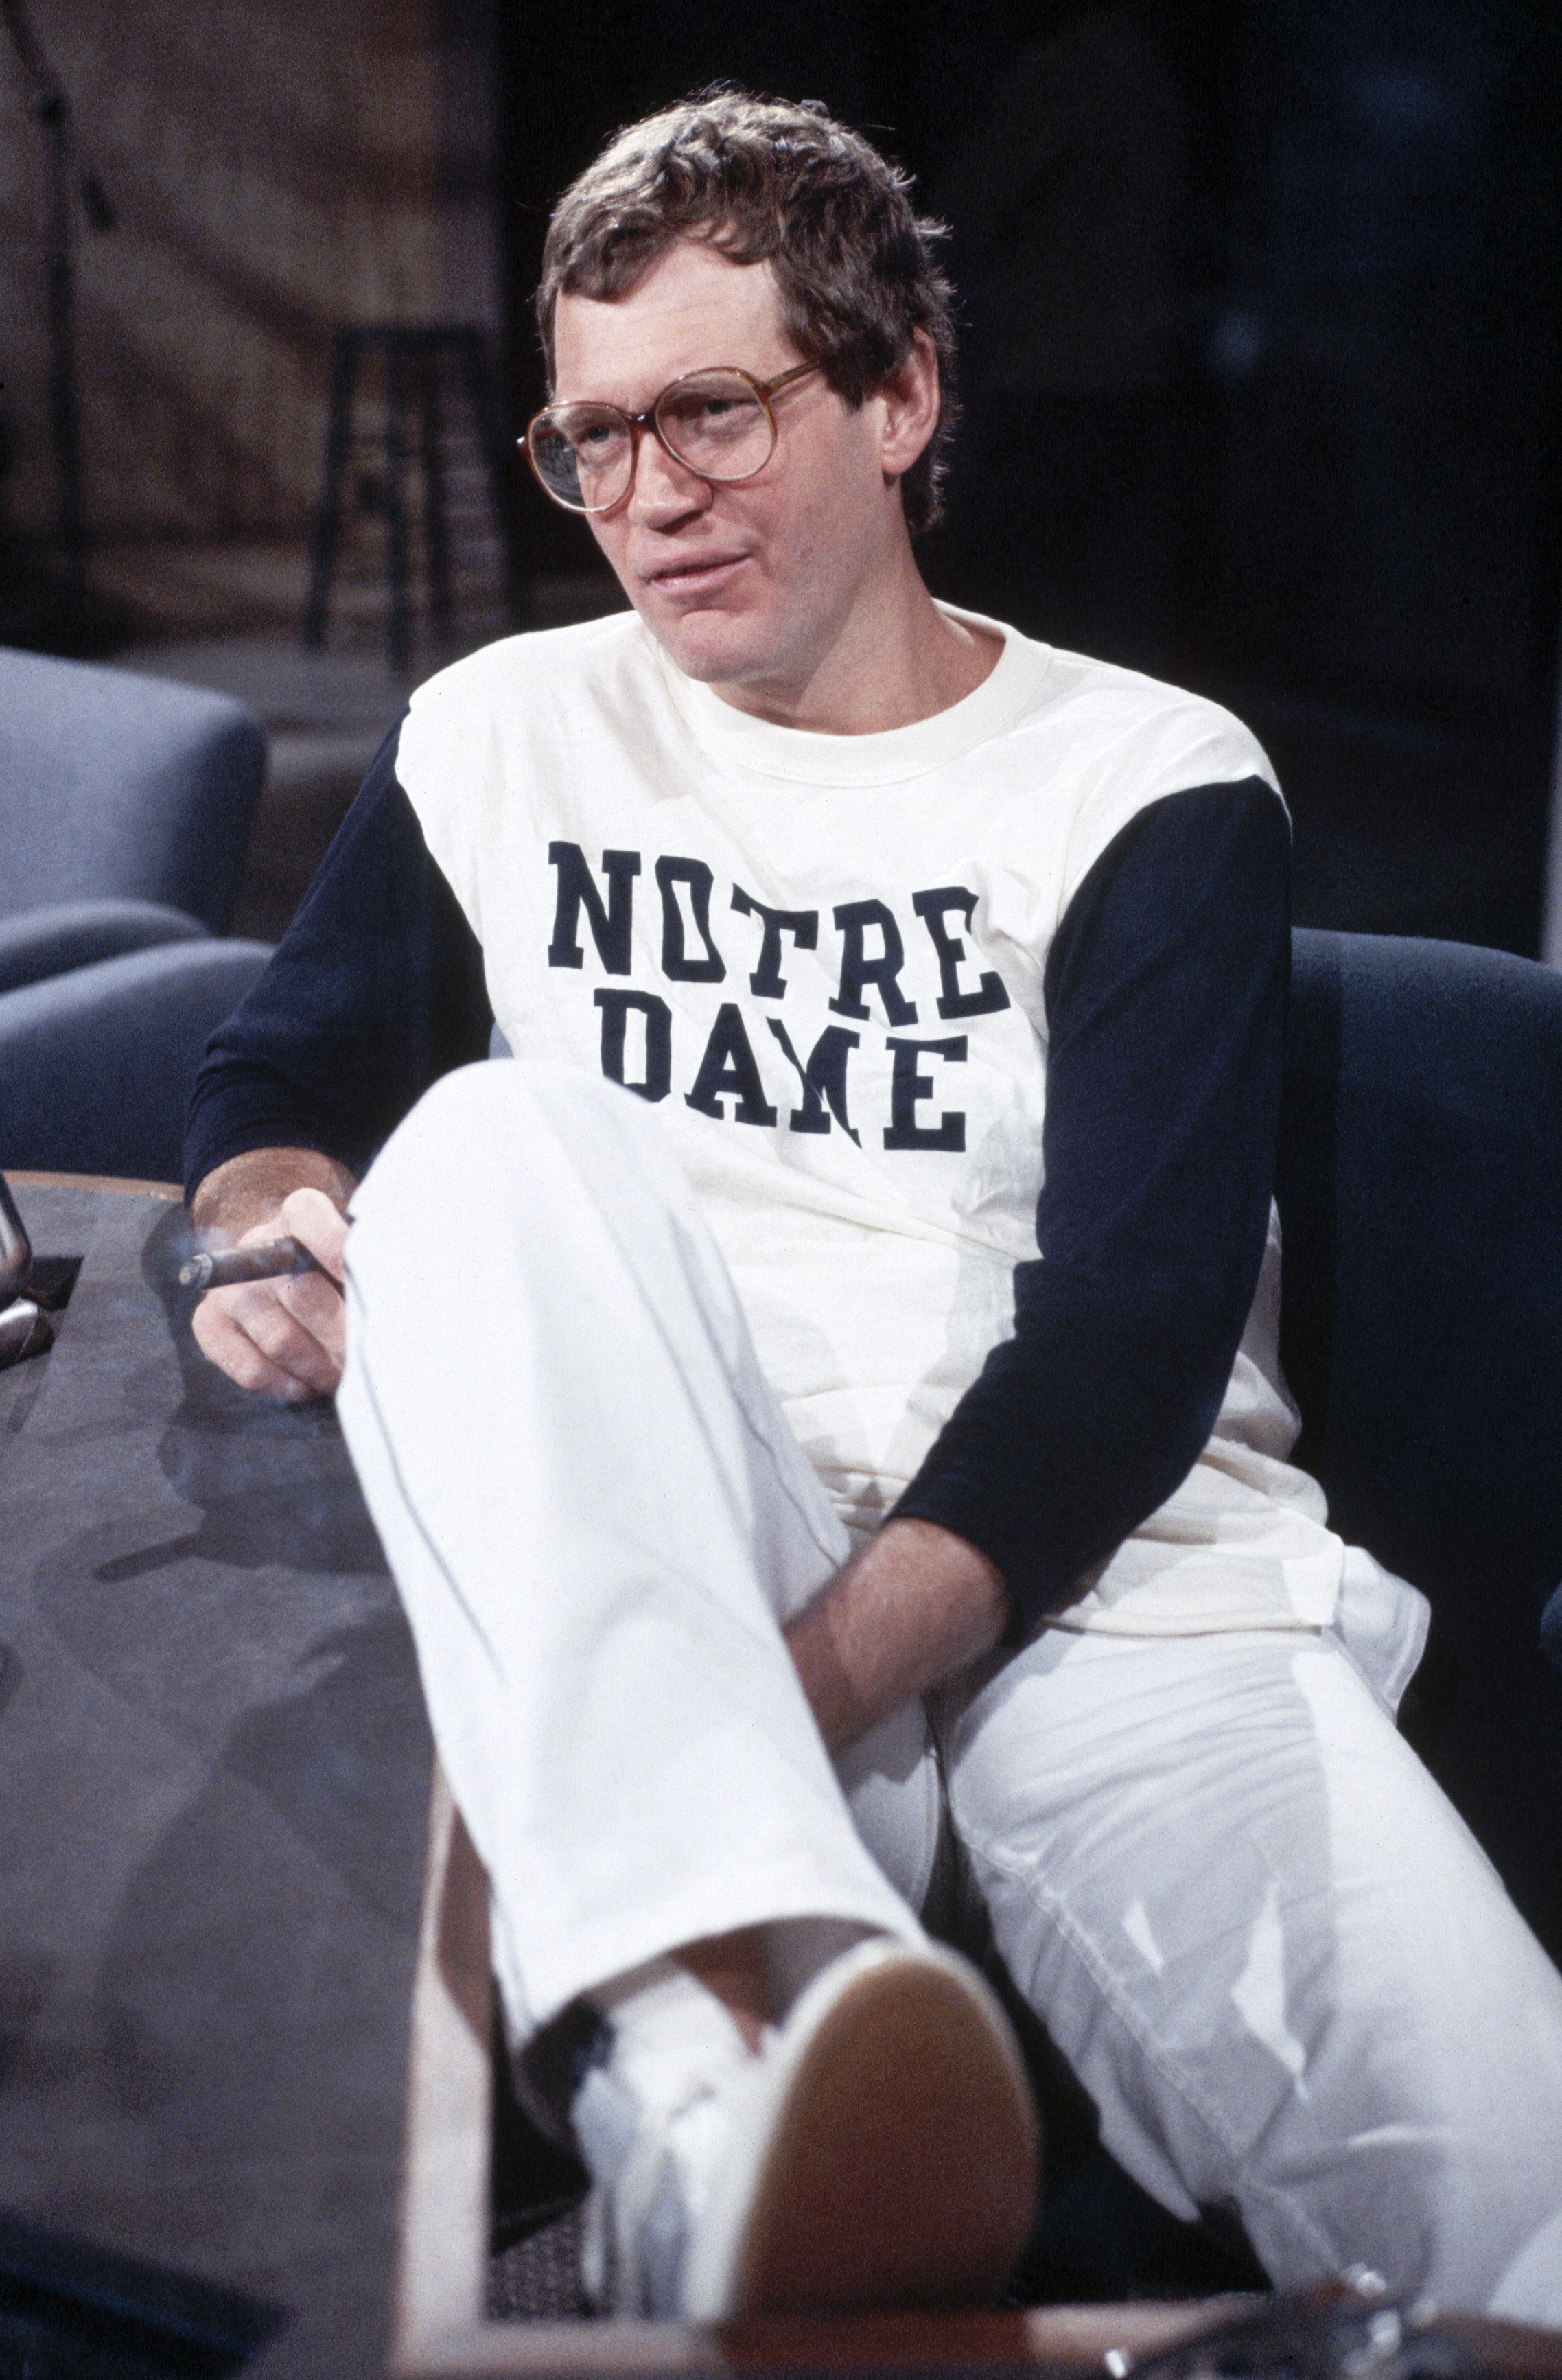 Dave Letterman in Notre Dame Shirt